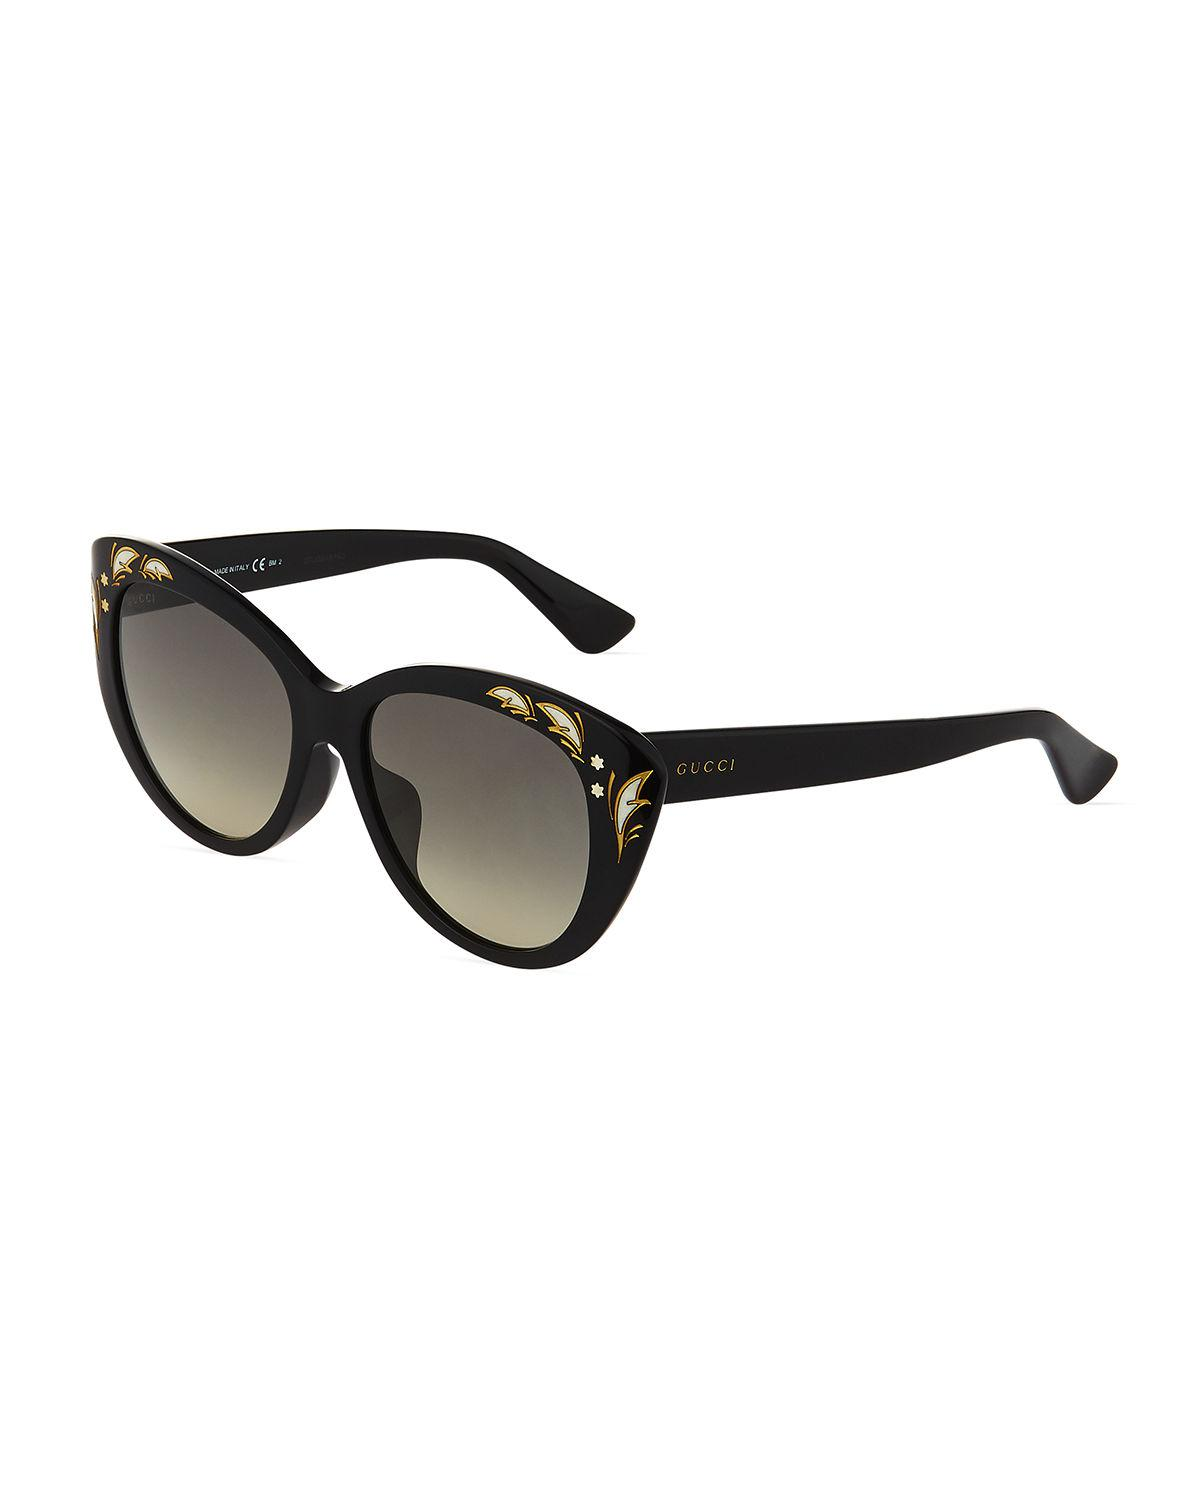 c9cb9cfd589 Lyst - Gucci Embellished Plastic Cat-eye Sunglasses in Black